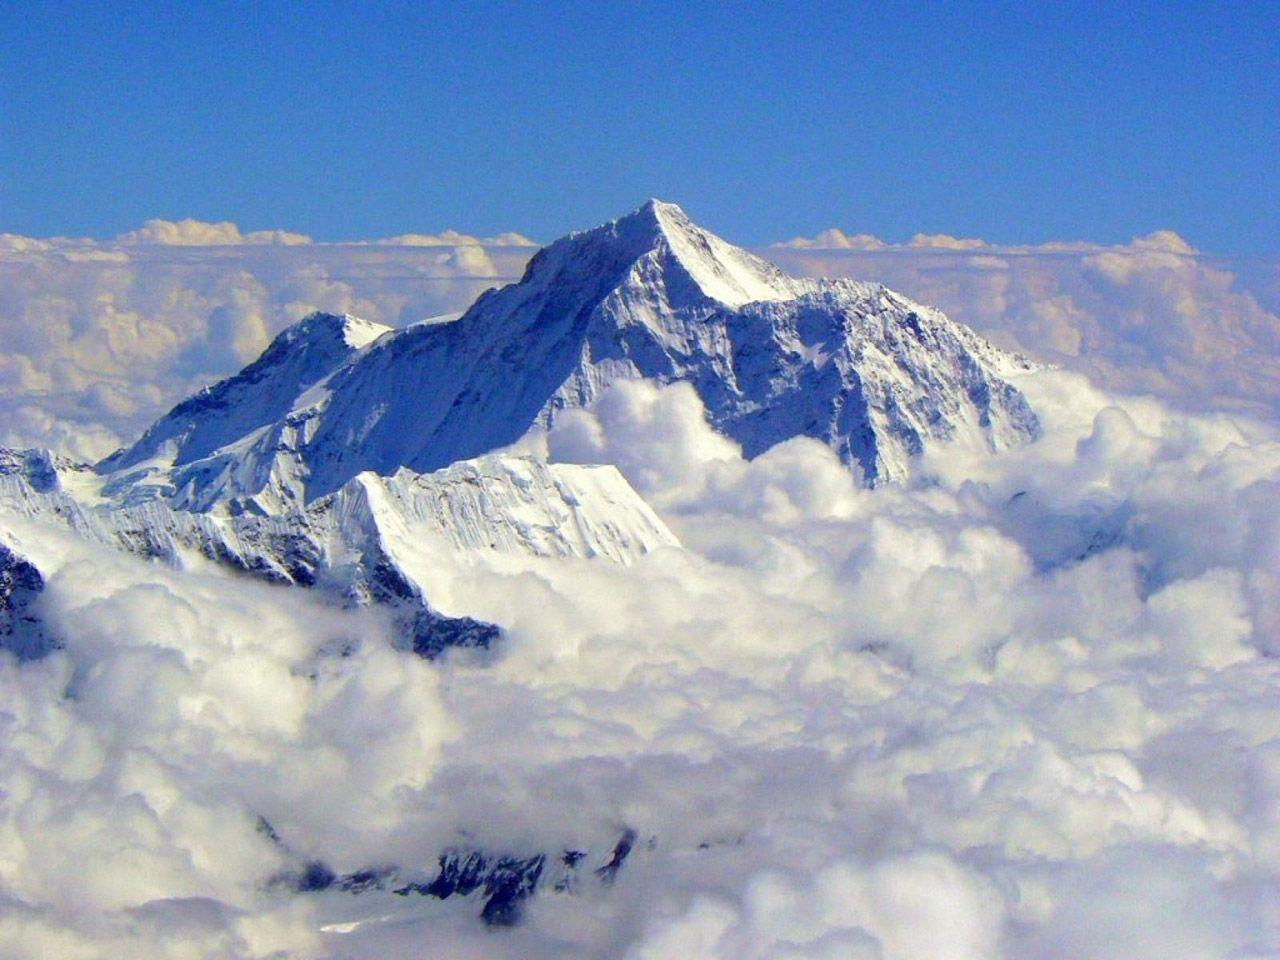 Mount Everest Wallpapers - HD Wallpapers Inn